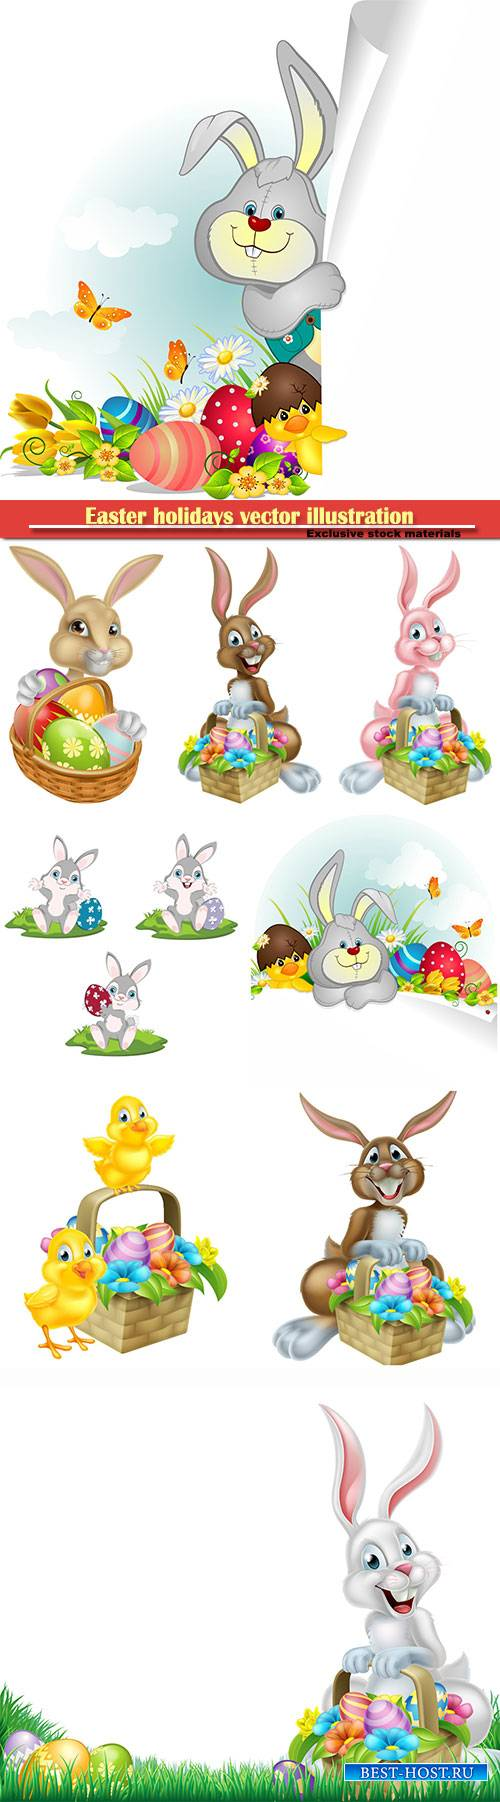 Easter holidays vector illustration # 7